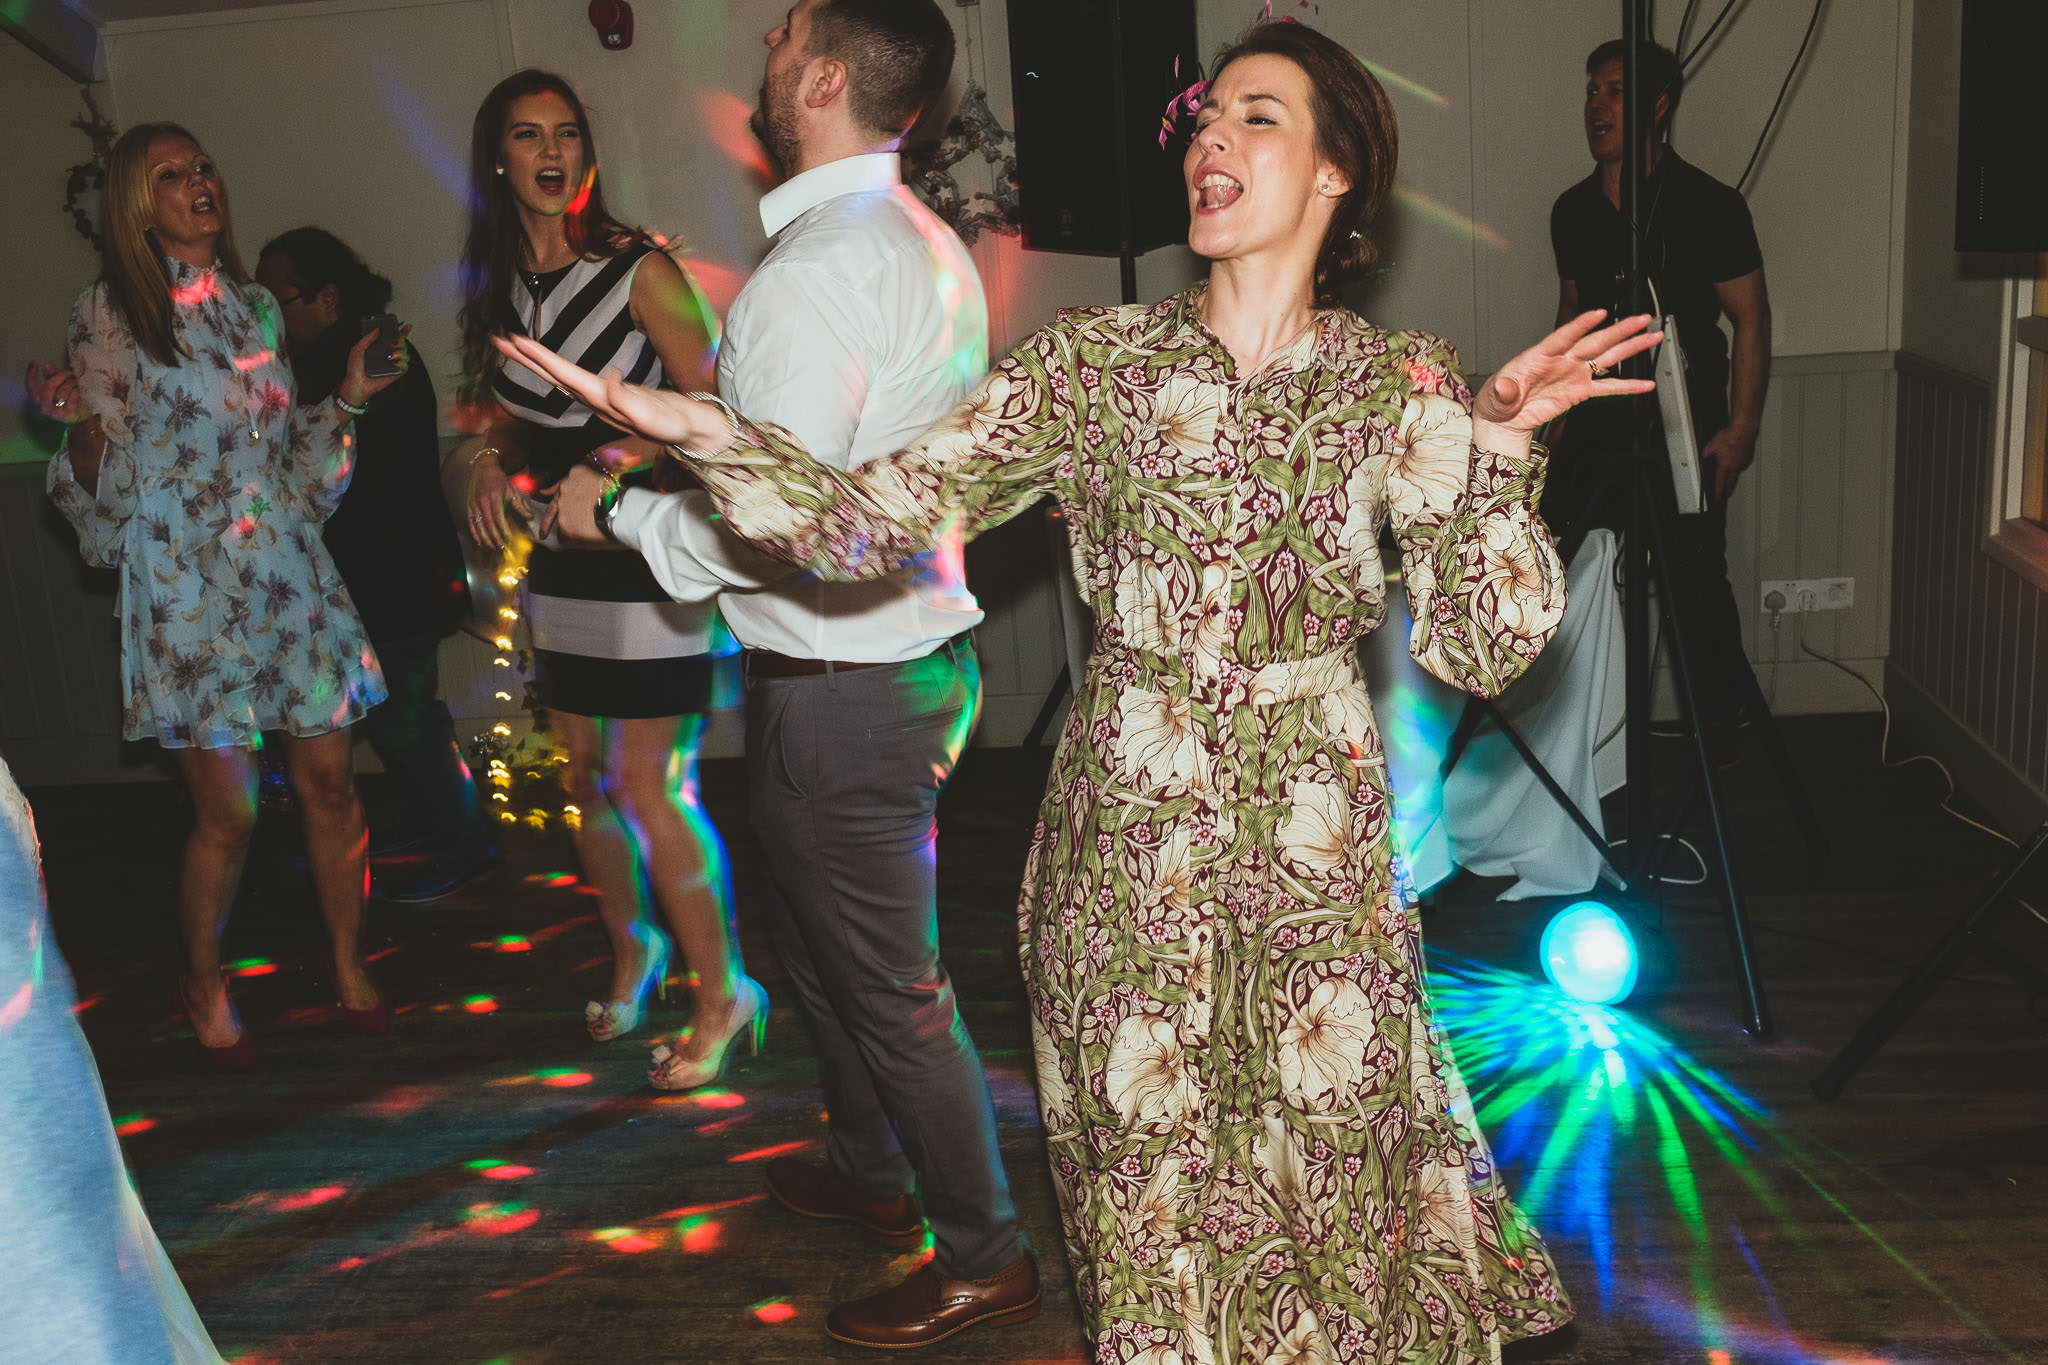 Guest dances energetically on wedding dance floor at The Parlour at Blagdon